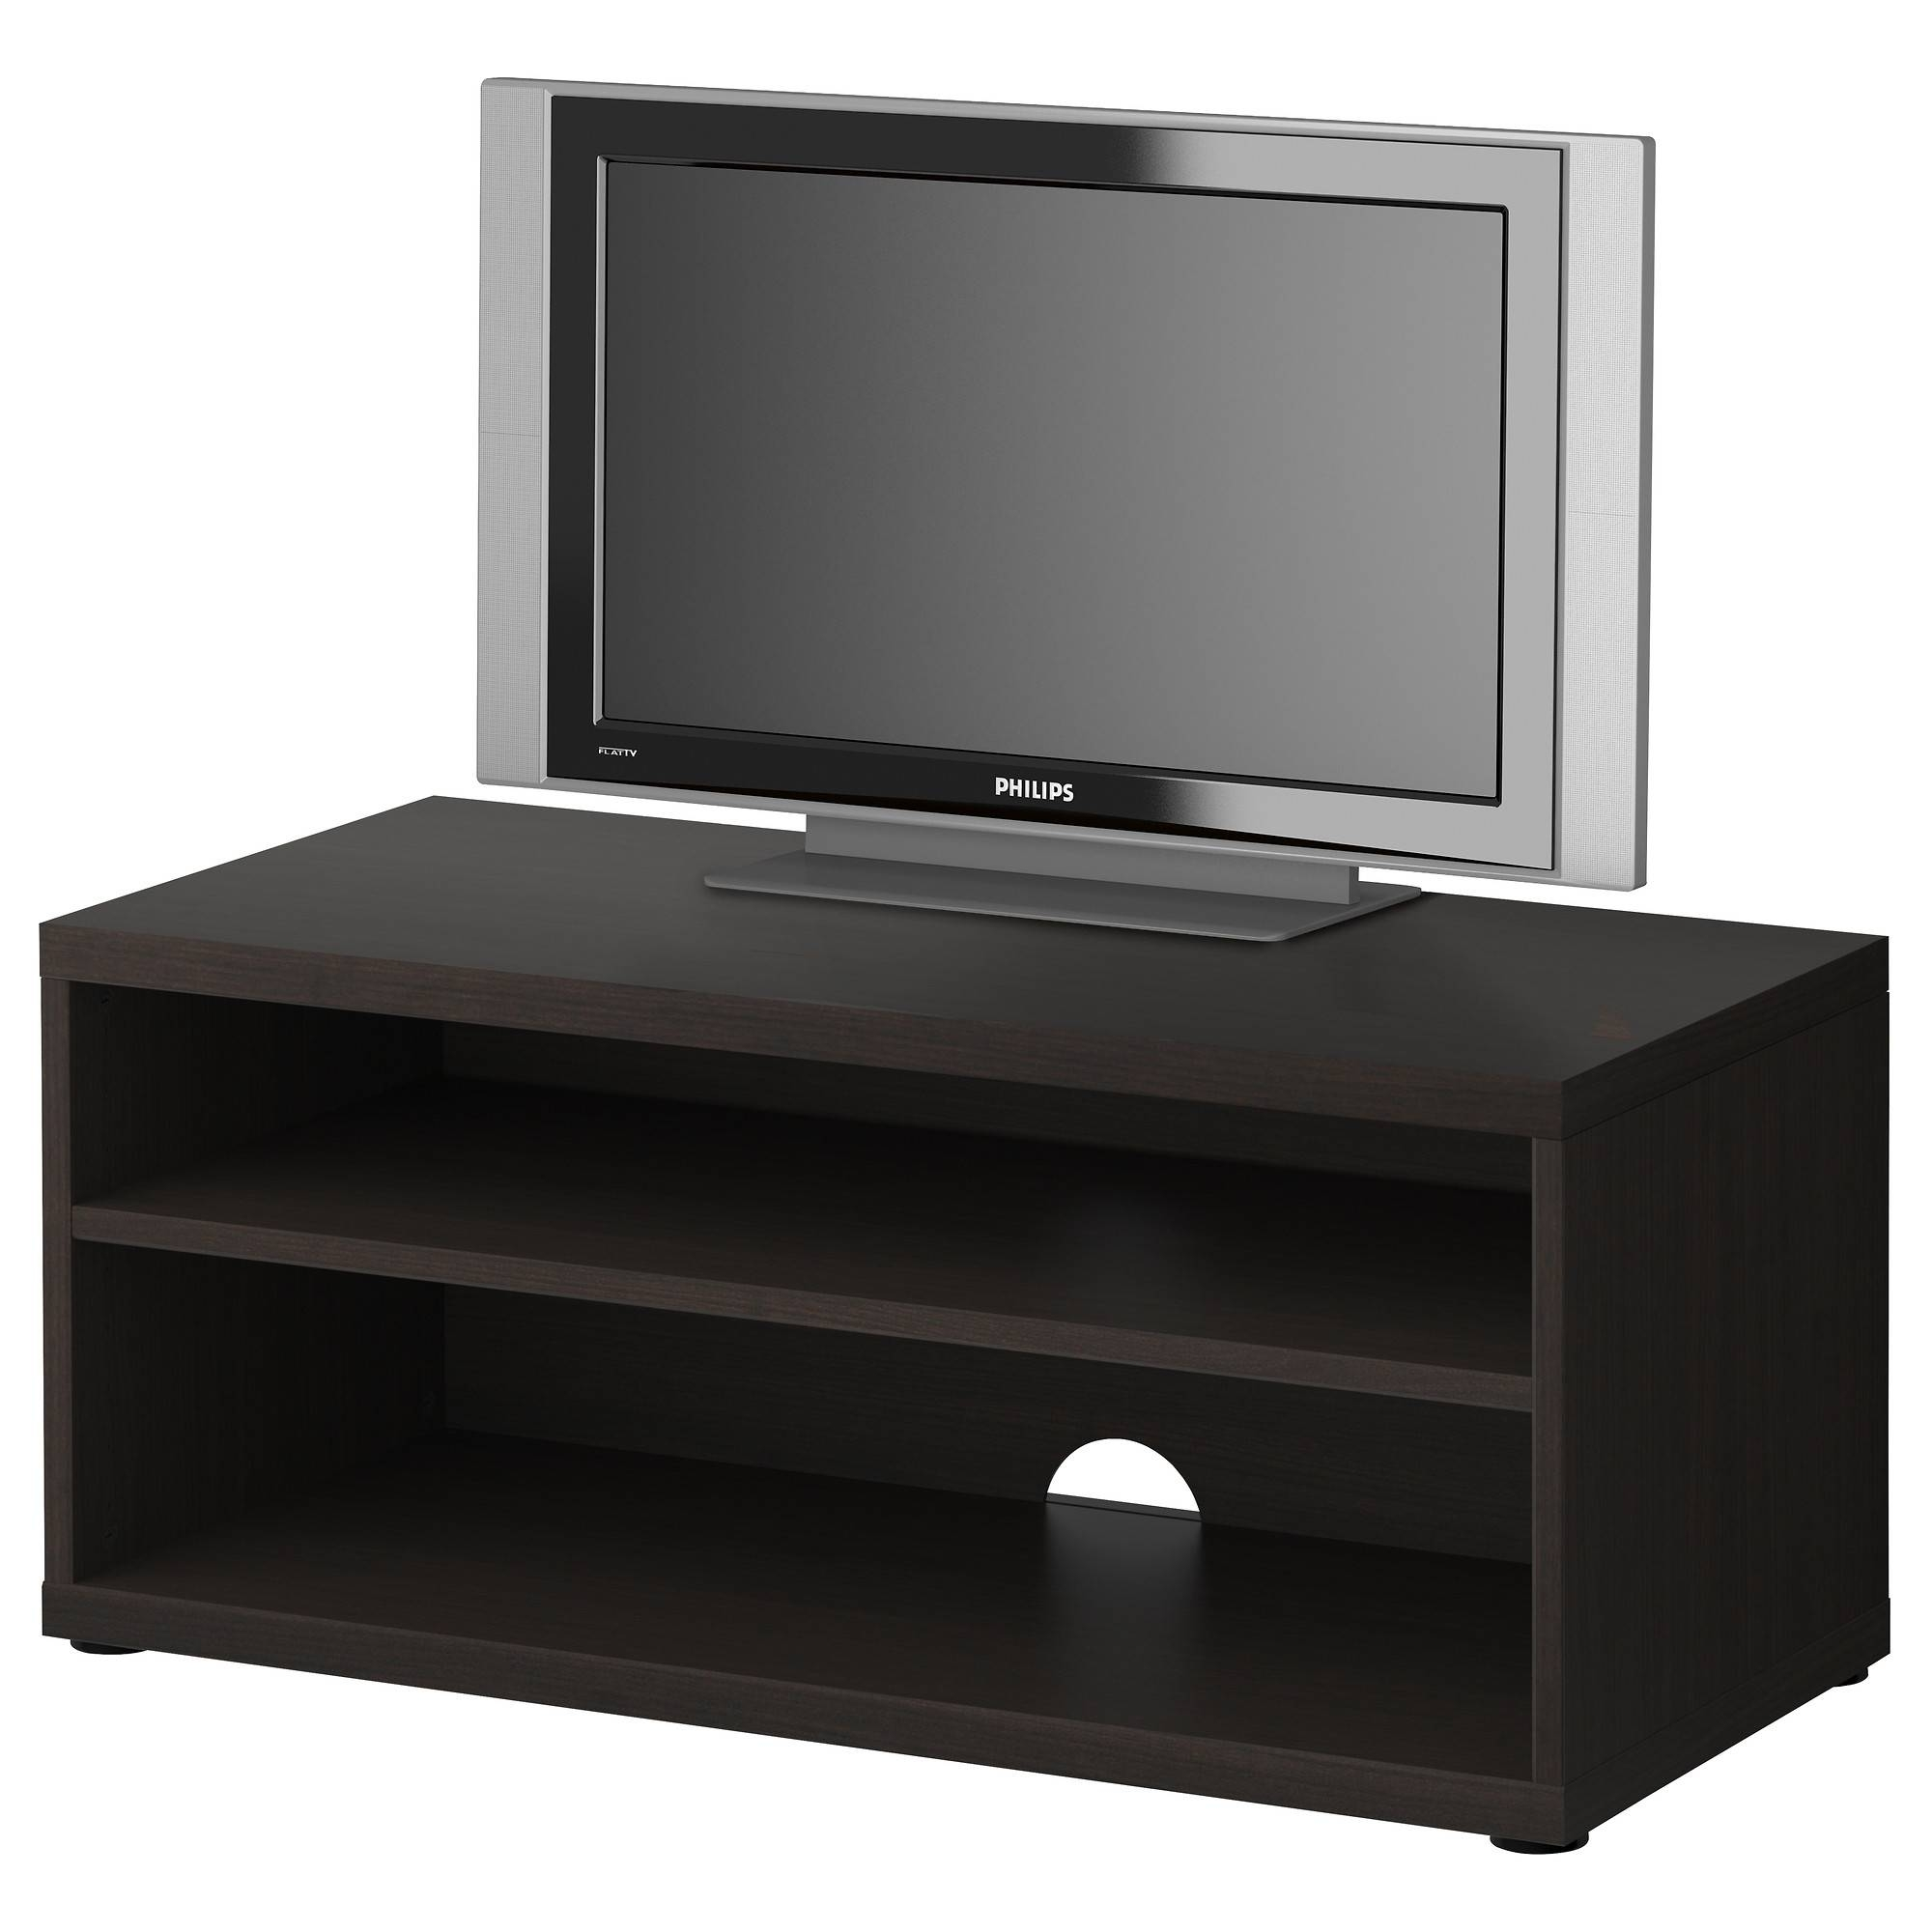 Tv Media Furniture – Tv Stands, Cabinets & Media Storage – Ikea Pertaining To Cheap Wood Tv Stands (View 9 of 15)